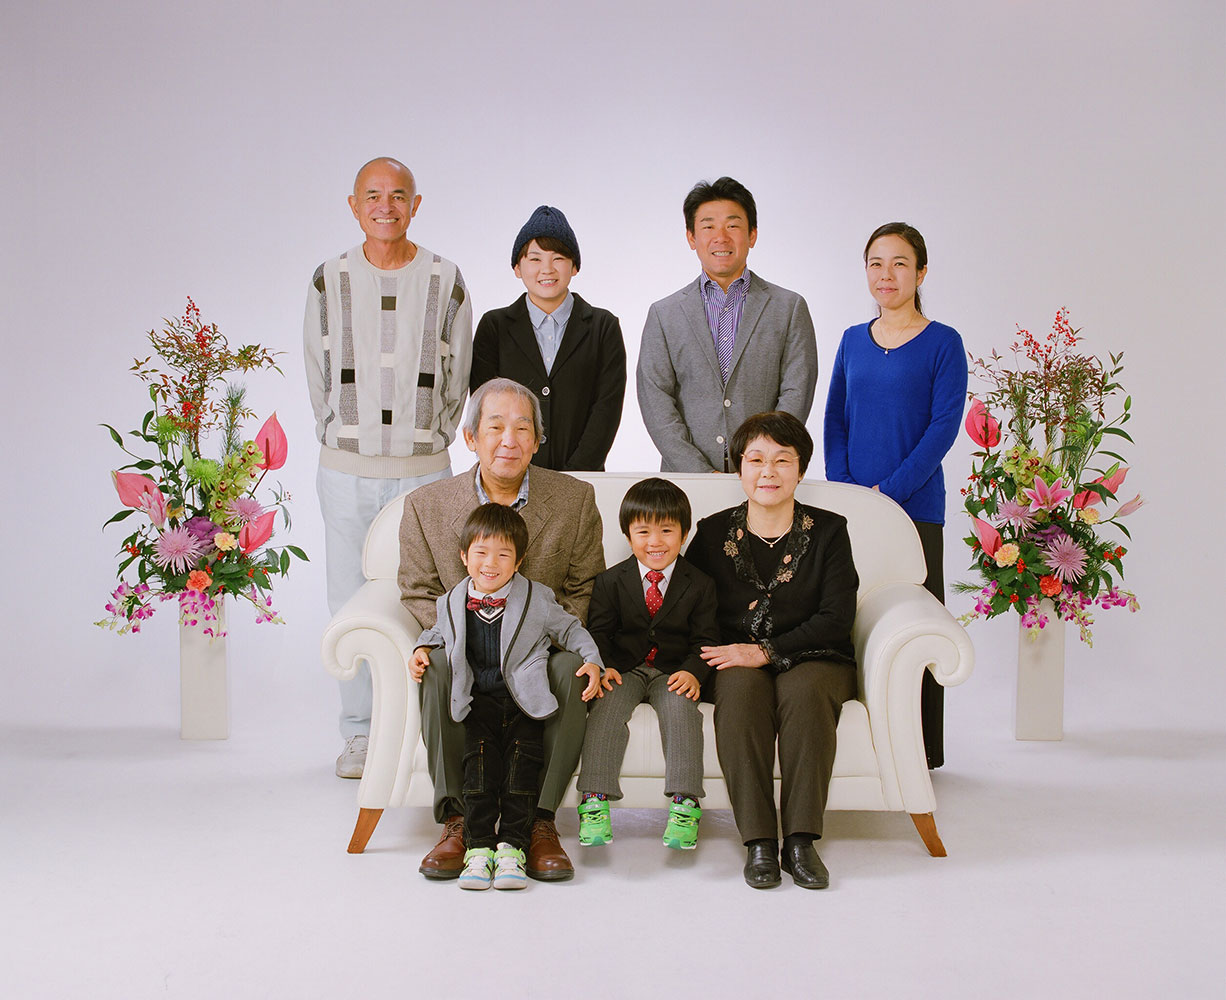 My Okinawa family — the Noharas. Seated: Ayao-san with Sota, and Hisae-chan with Yuta. Standing: myself, Sugako, her brother Daisuke and sister-in-law Riemi.